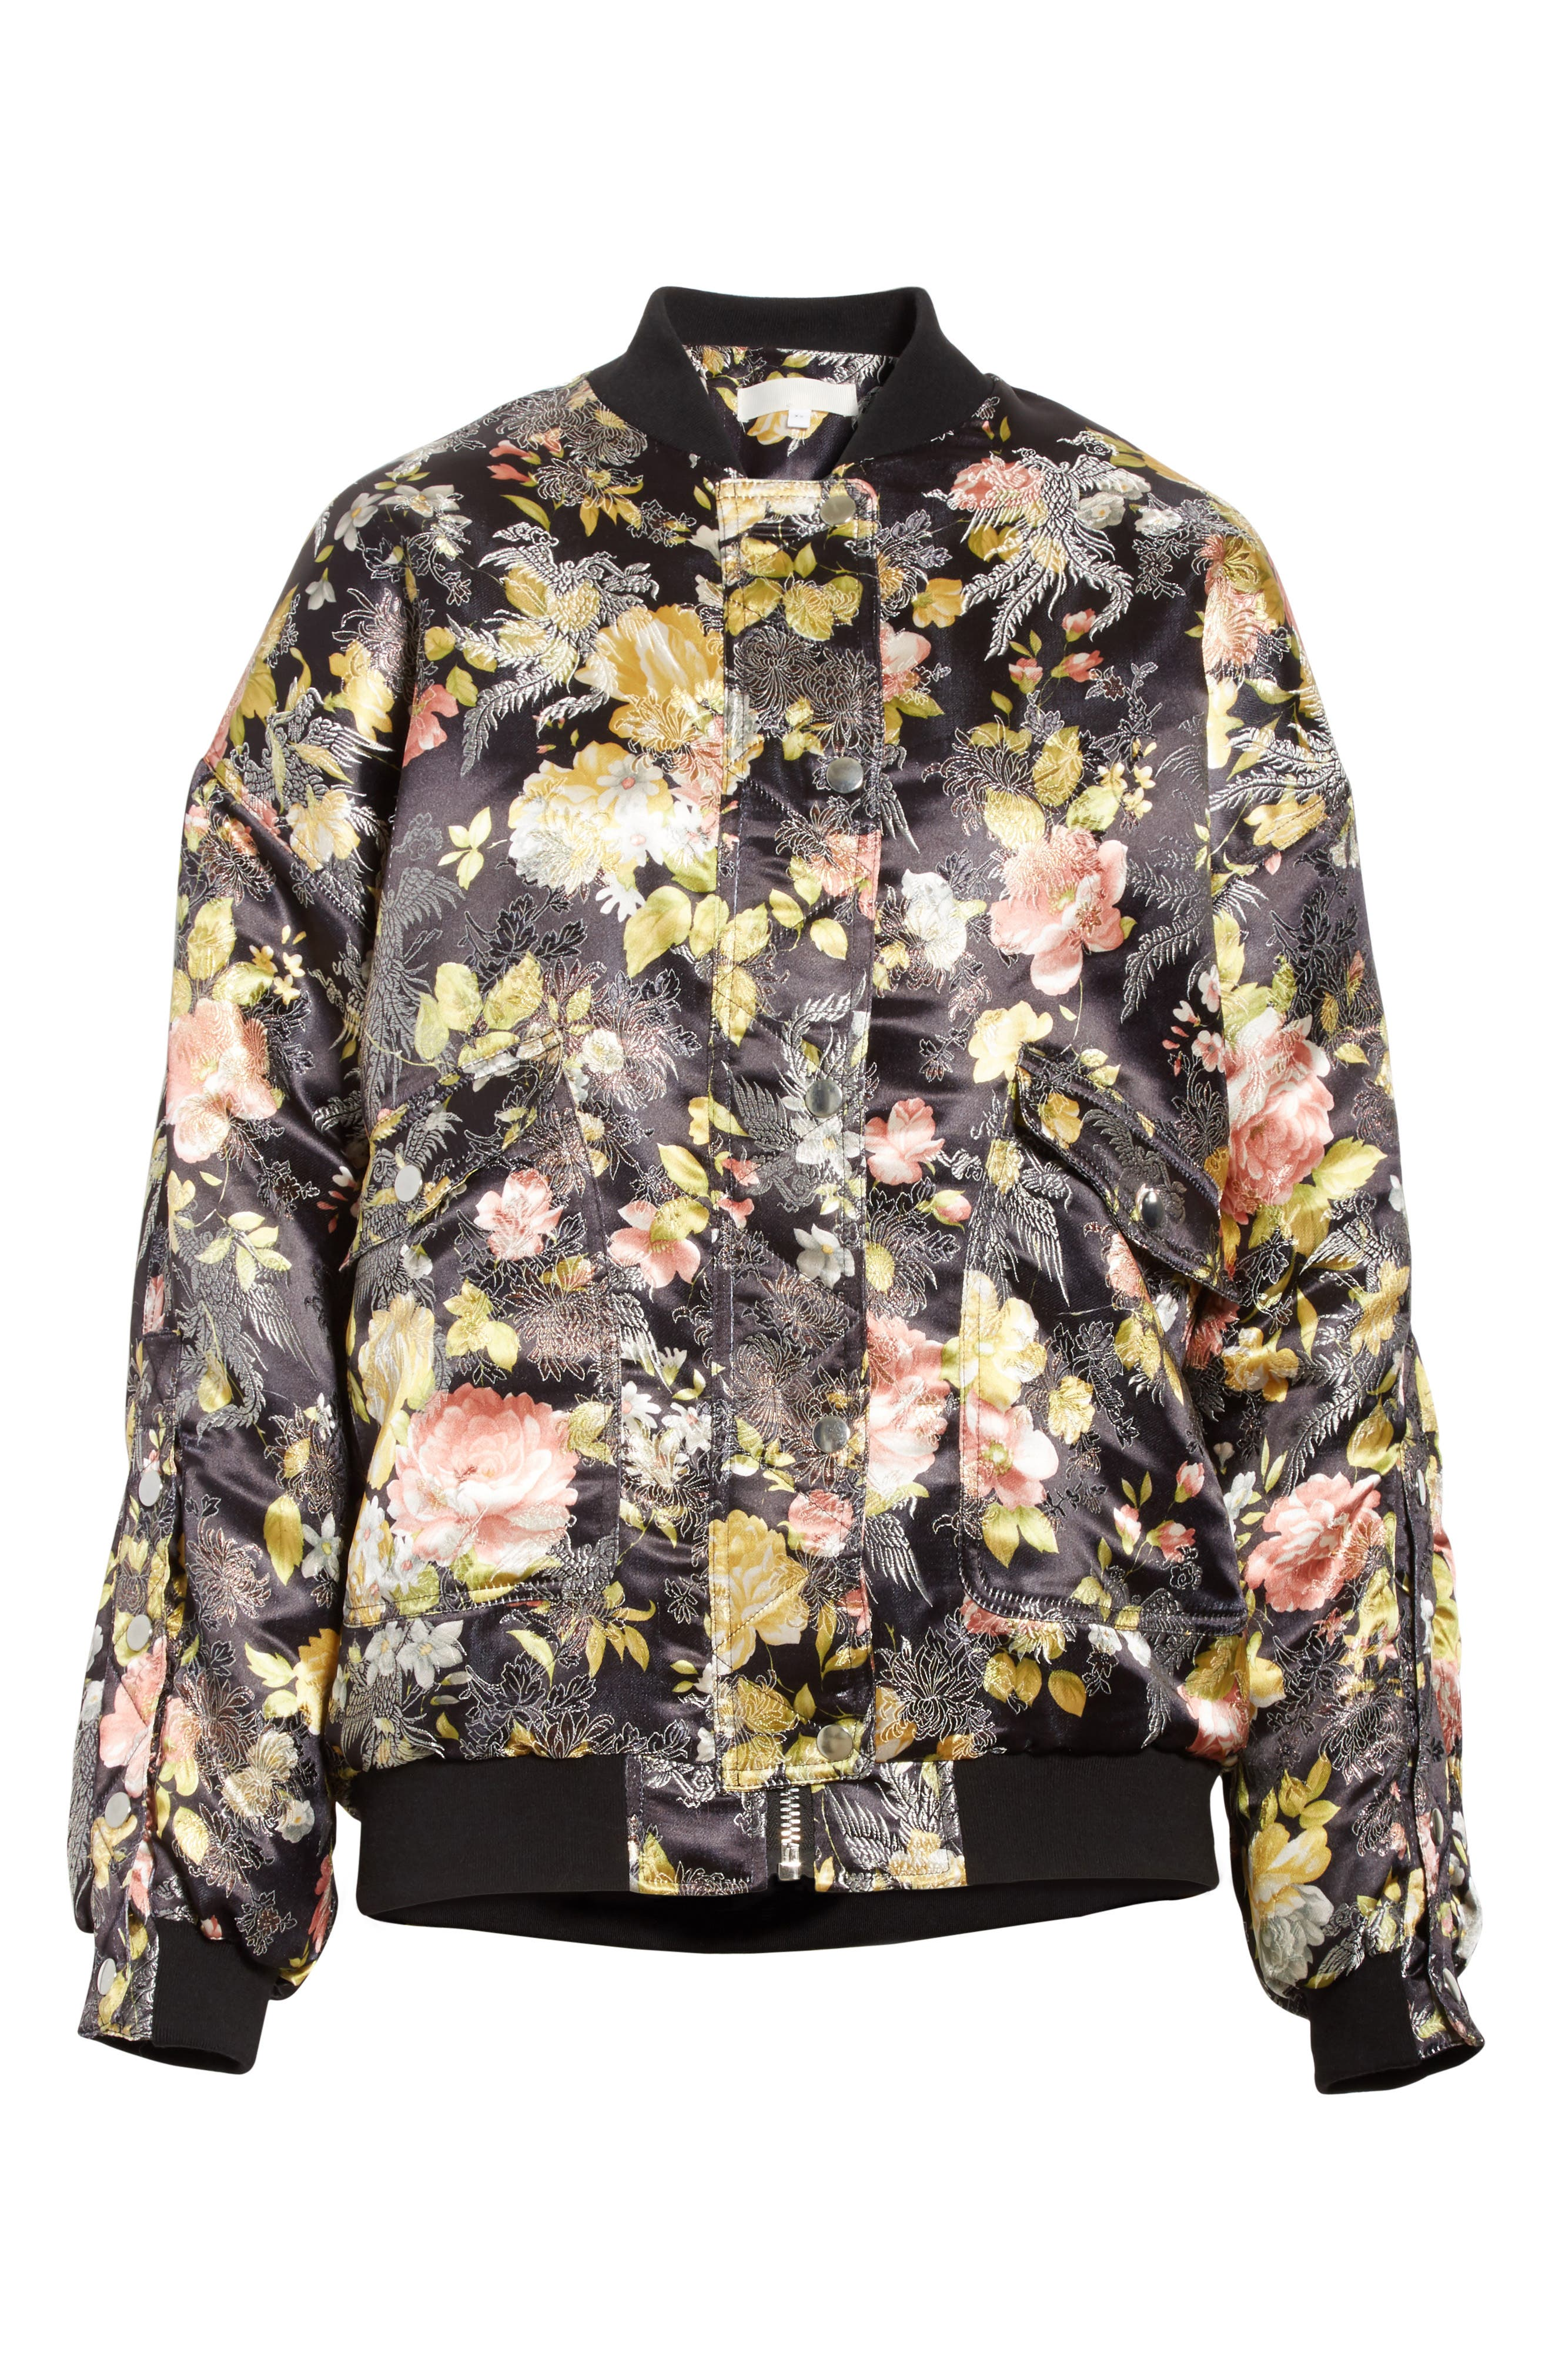 Floral Jacquard Bomber Jacket,                             Alternate thumbnail 5, color,                             019